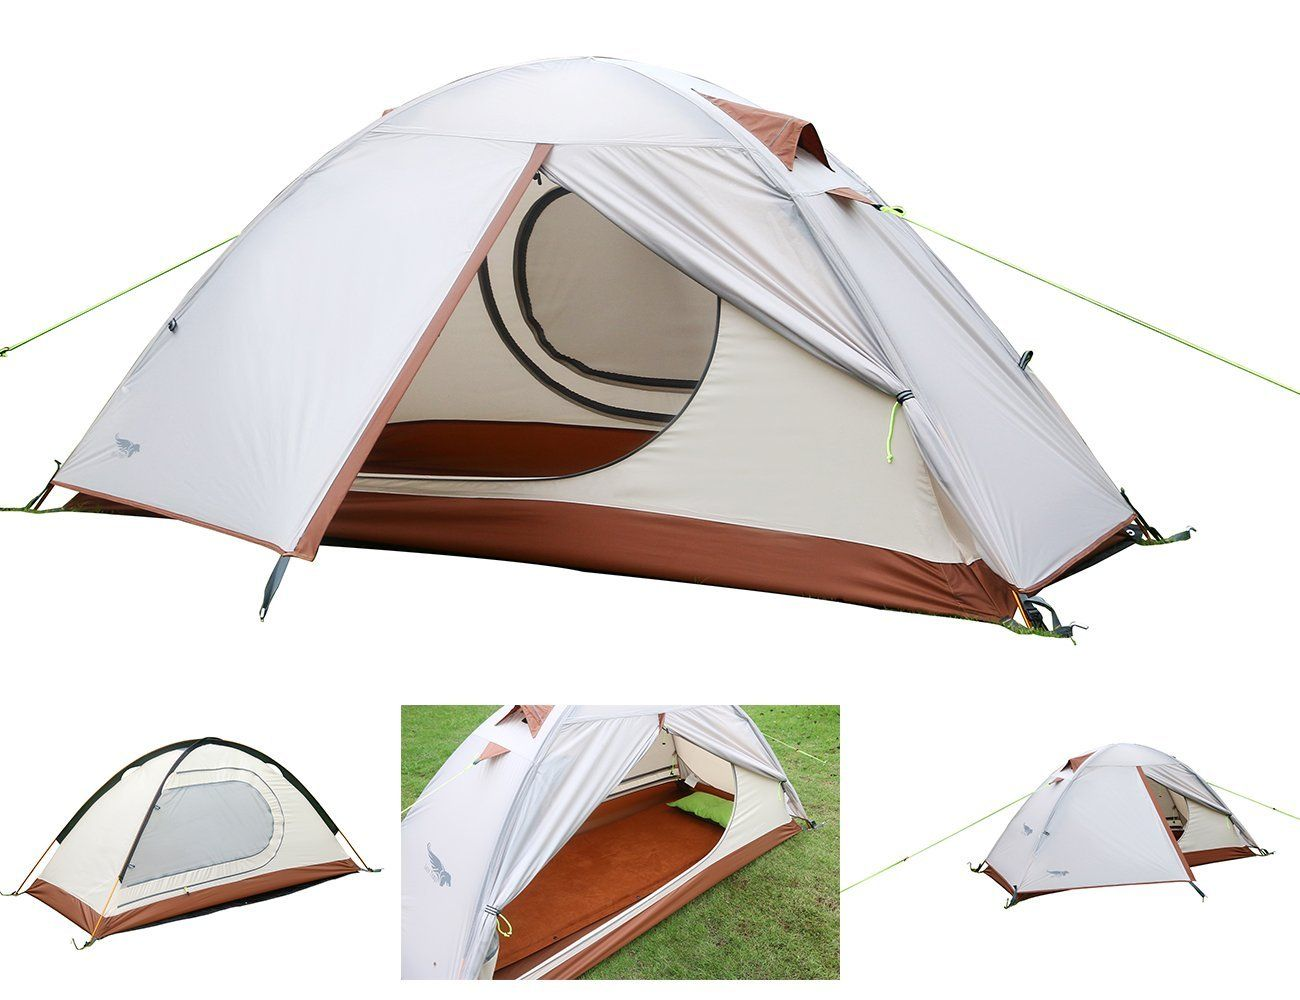 Lightweight One Person Tent Luxe Tempo Single 1 Person Tent For Camping 3 3lb Campinggear Camping Backpacking Tent Tent Best Tents For Camping